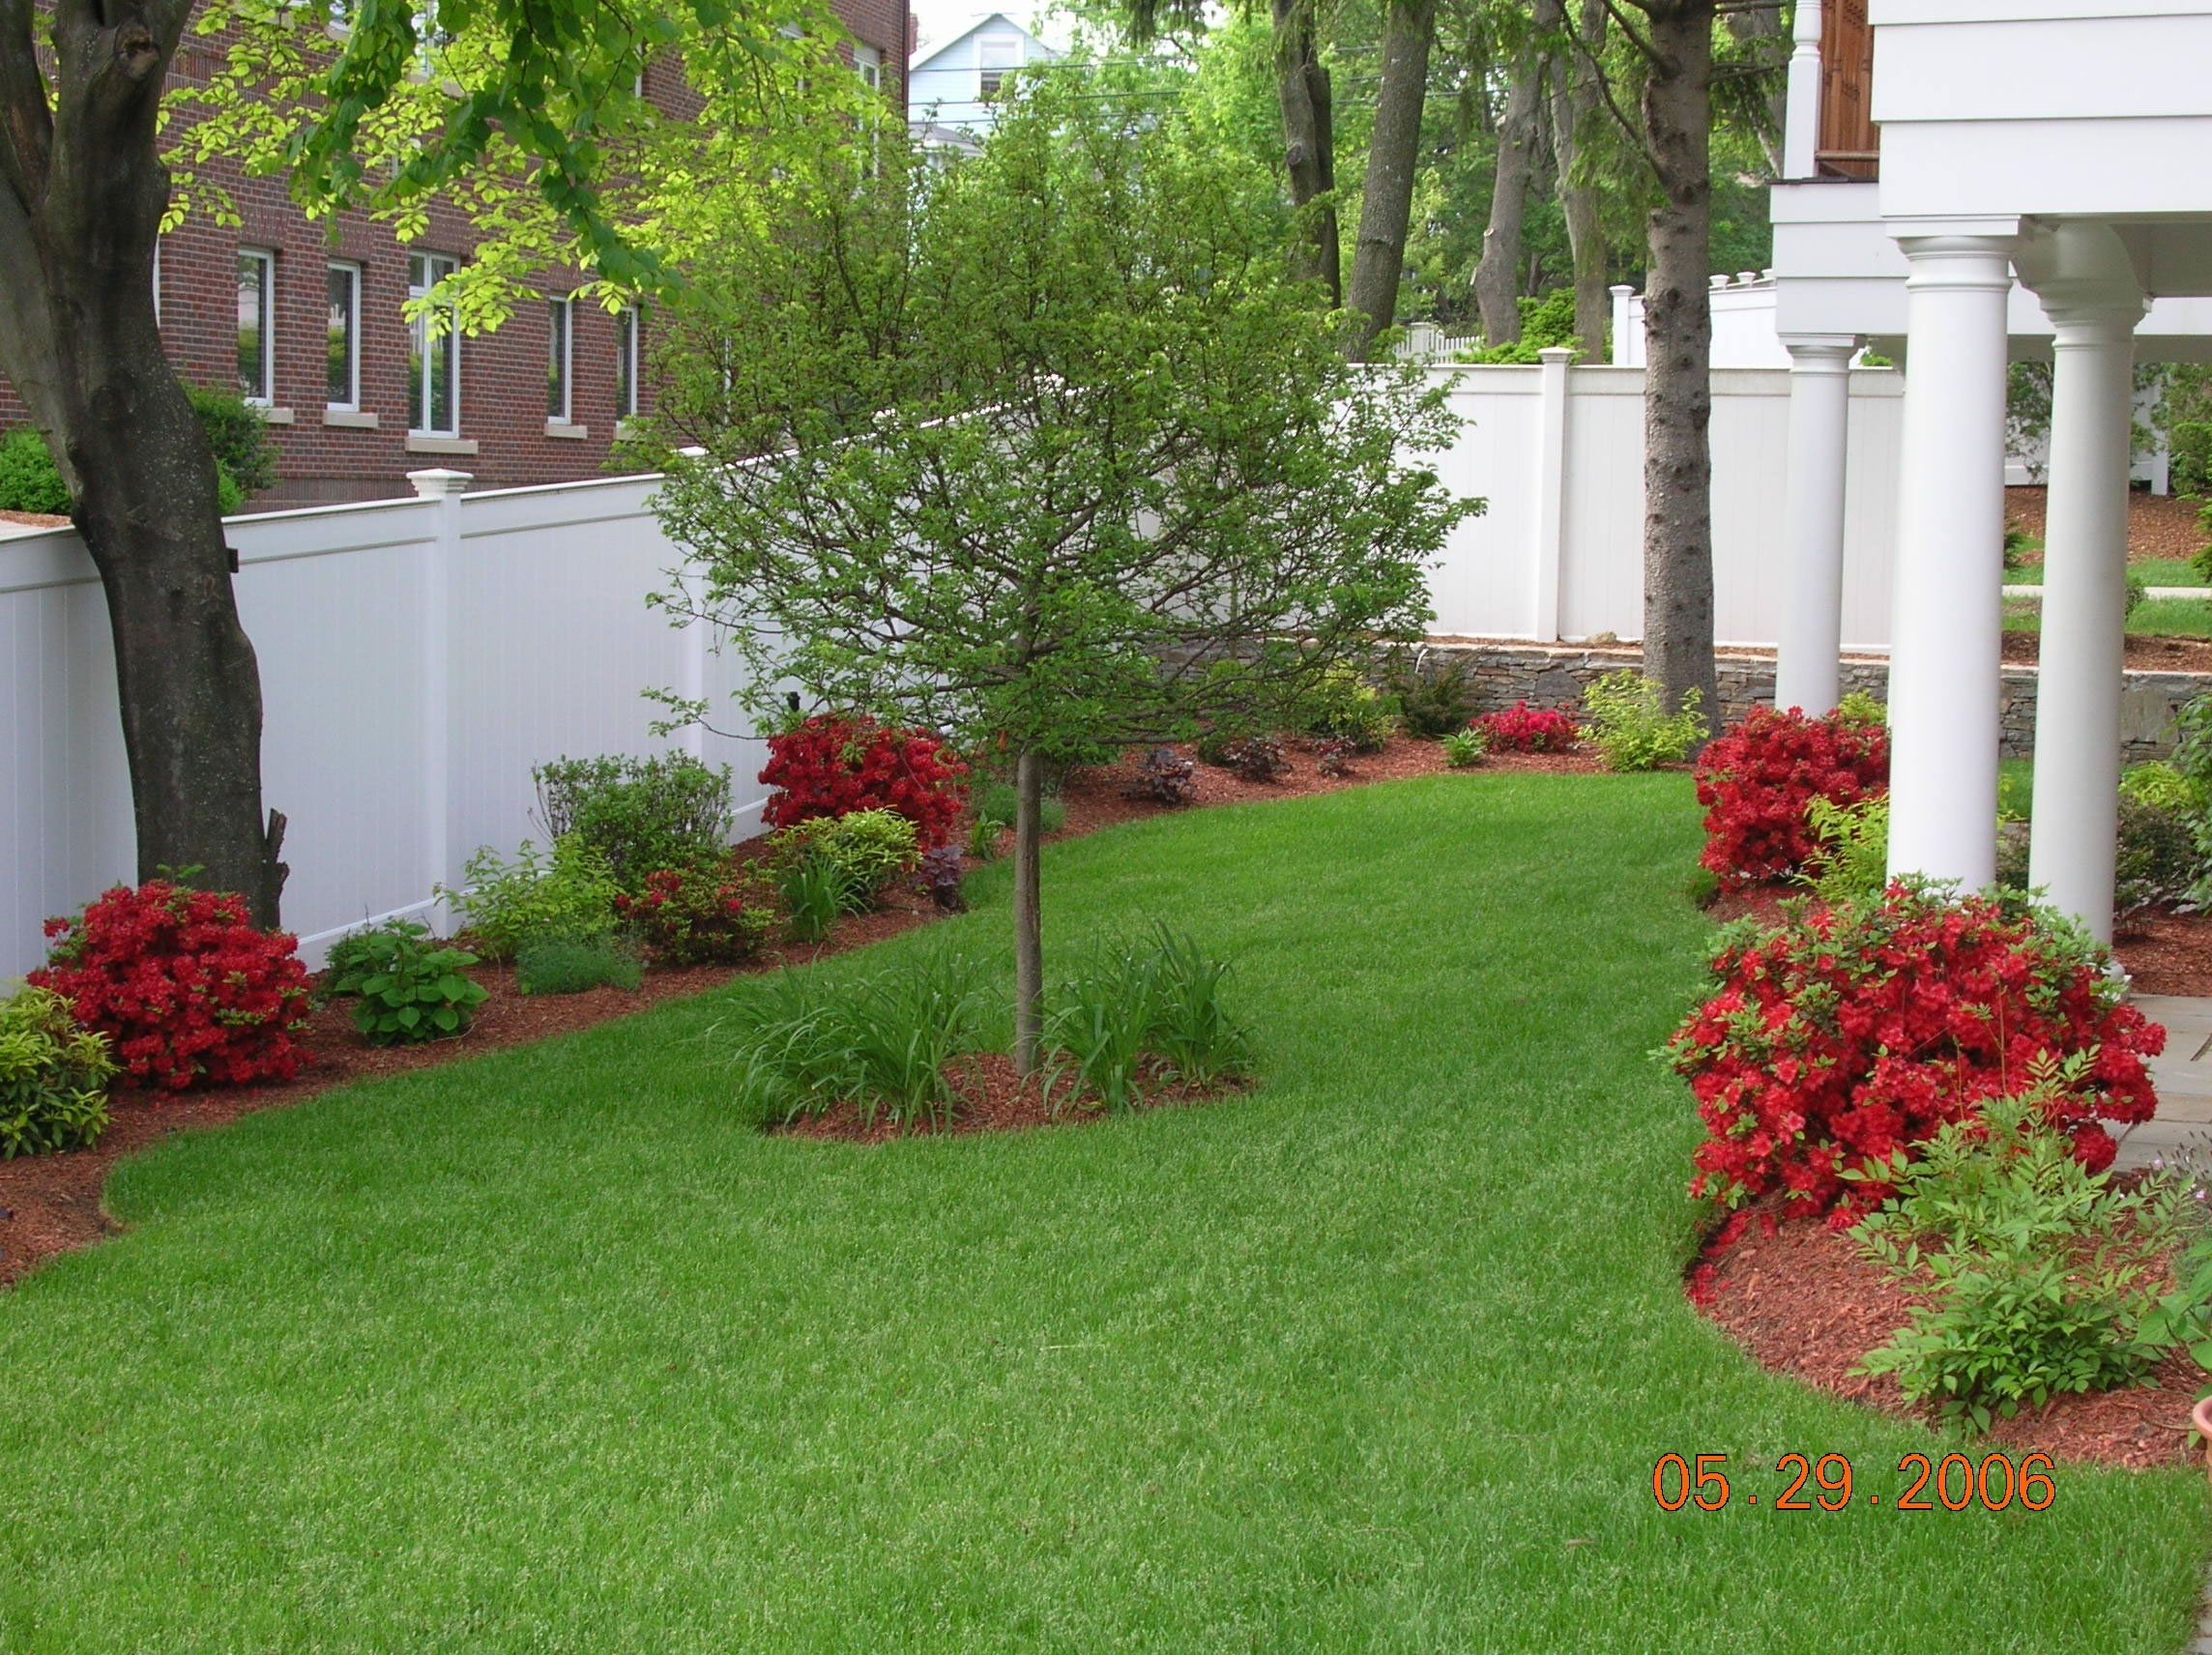 Top 10 simple diy landscaping ideas seek diy for Landscaping ideas